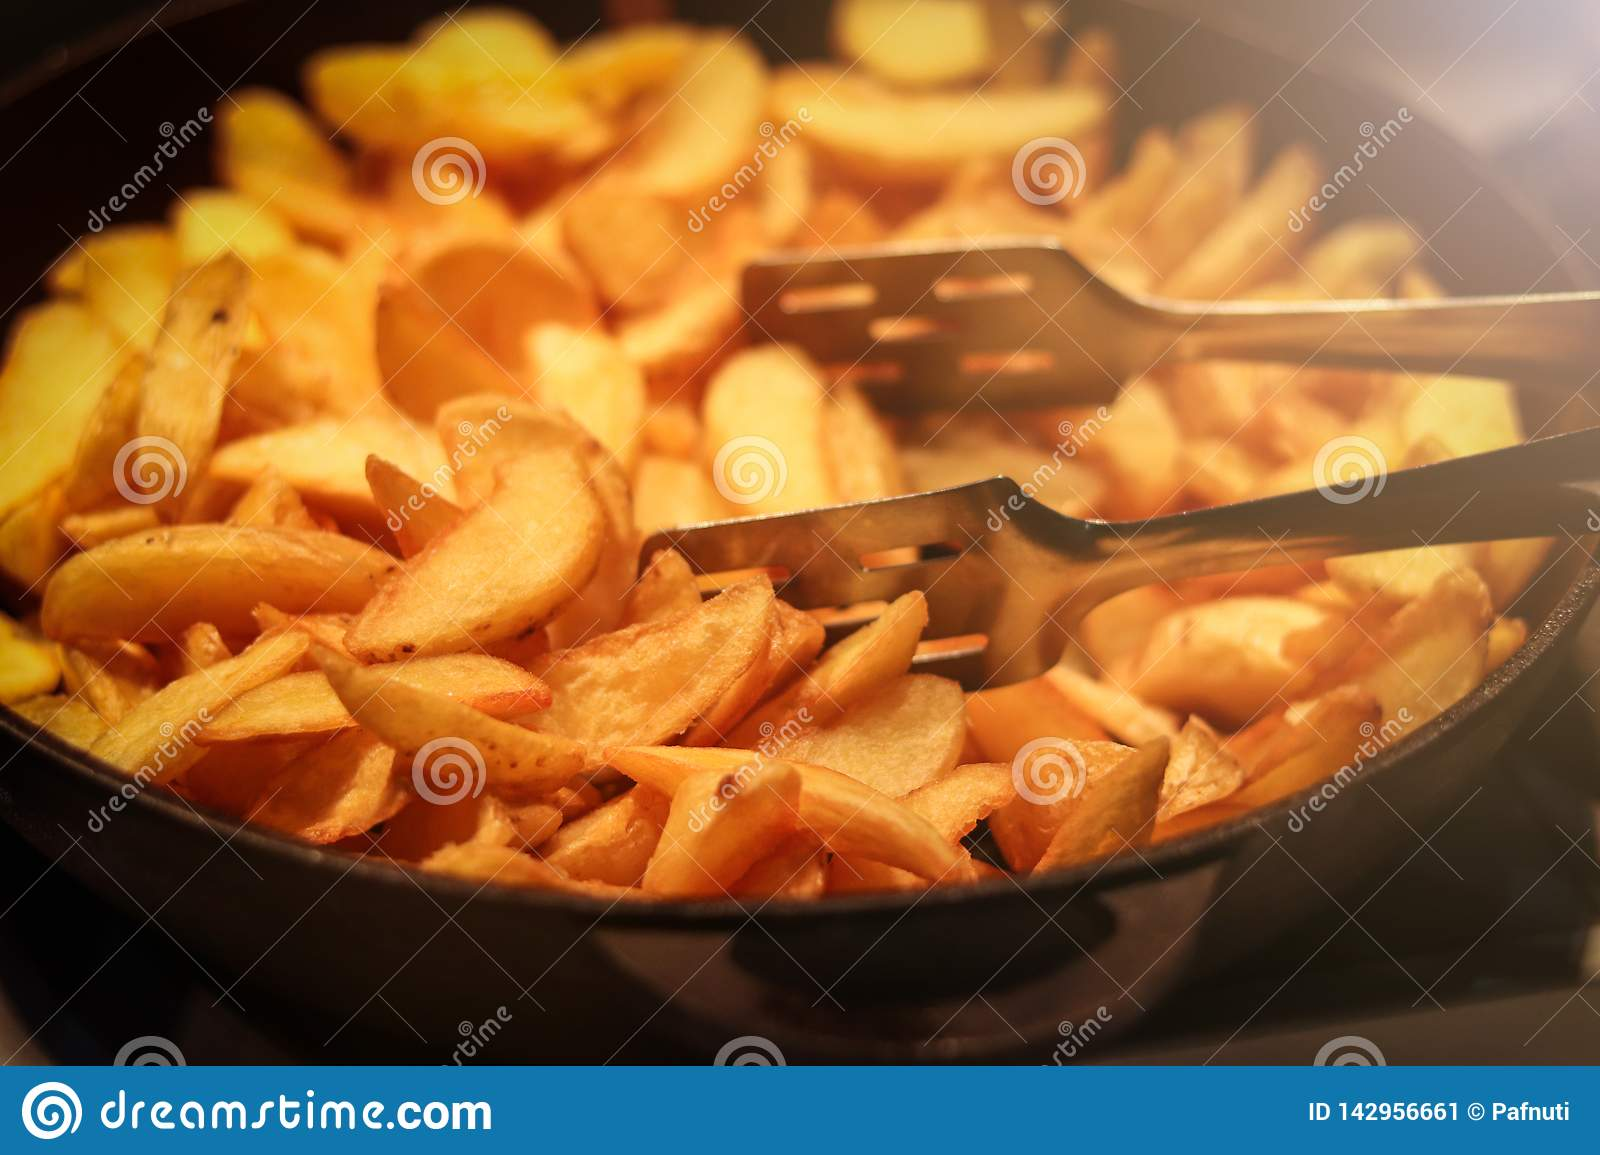 Tasty crispy fried wedges of potato served